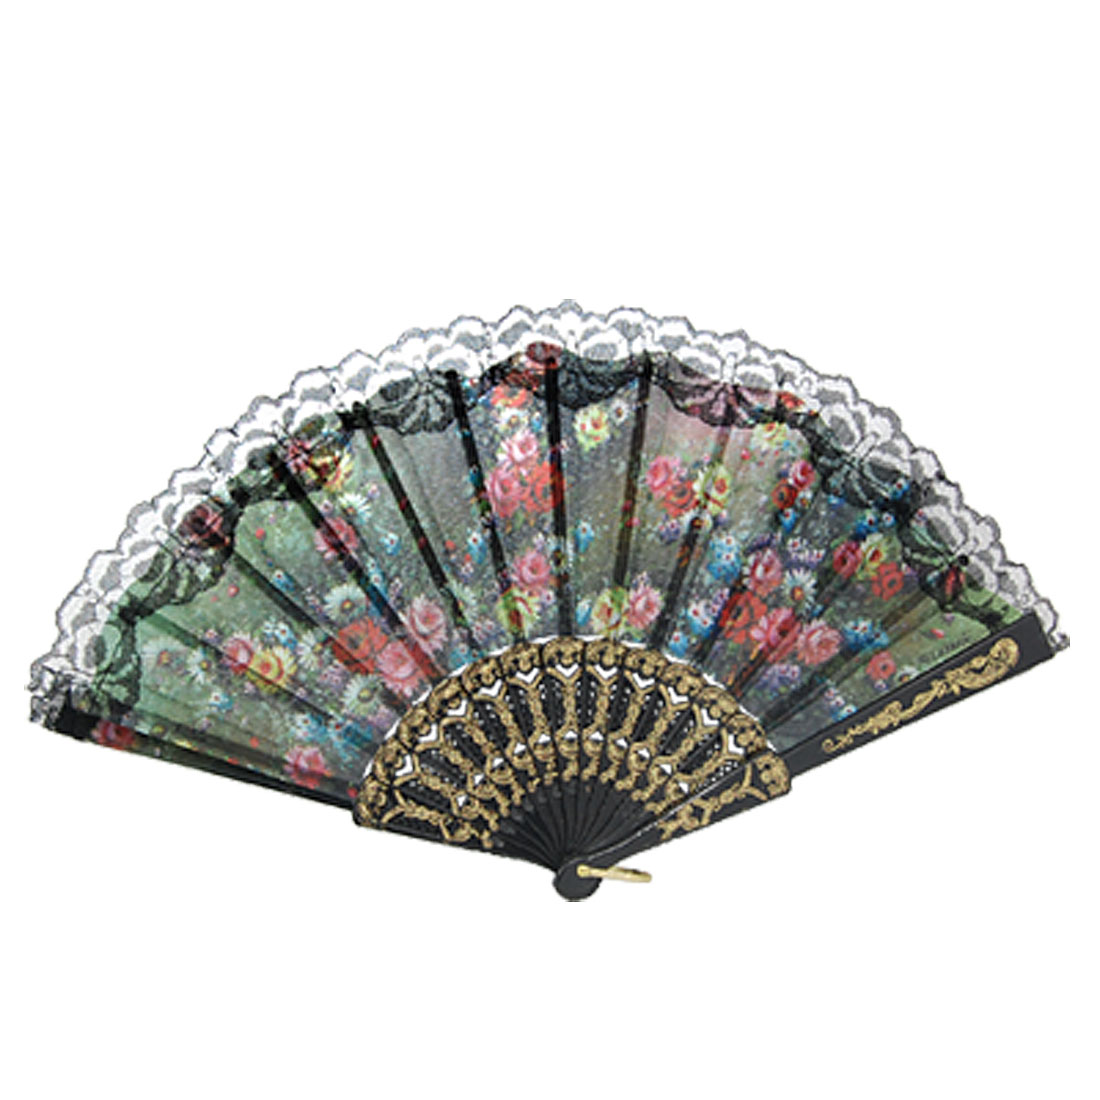 Lace Trim Accent Floral Print Plastic Handle Folding Hand Fan